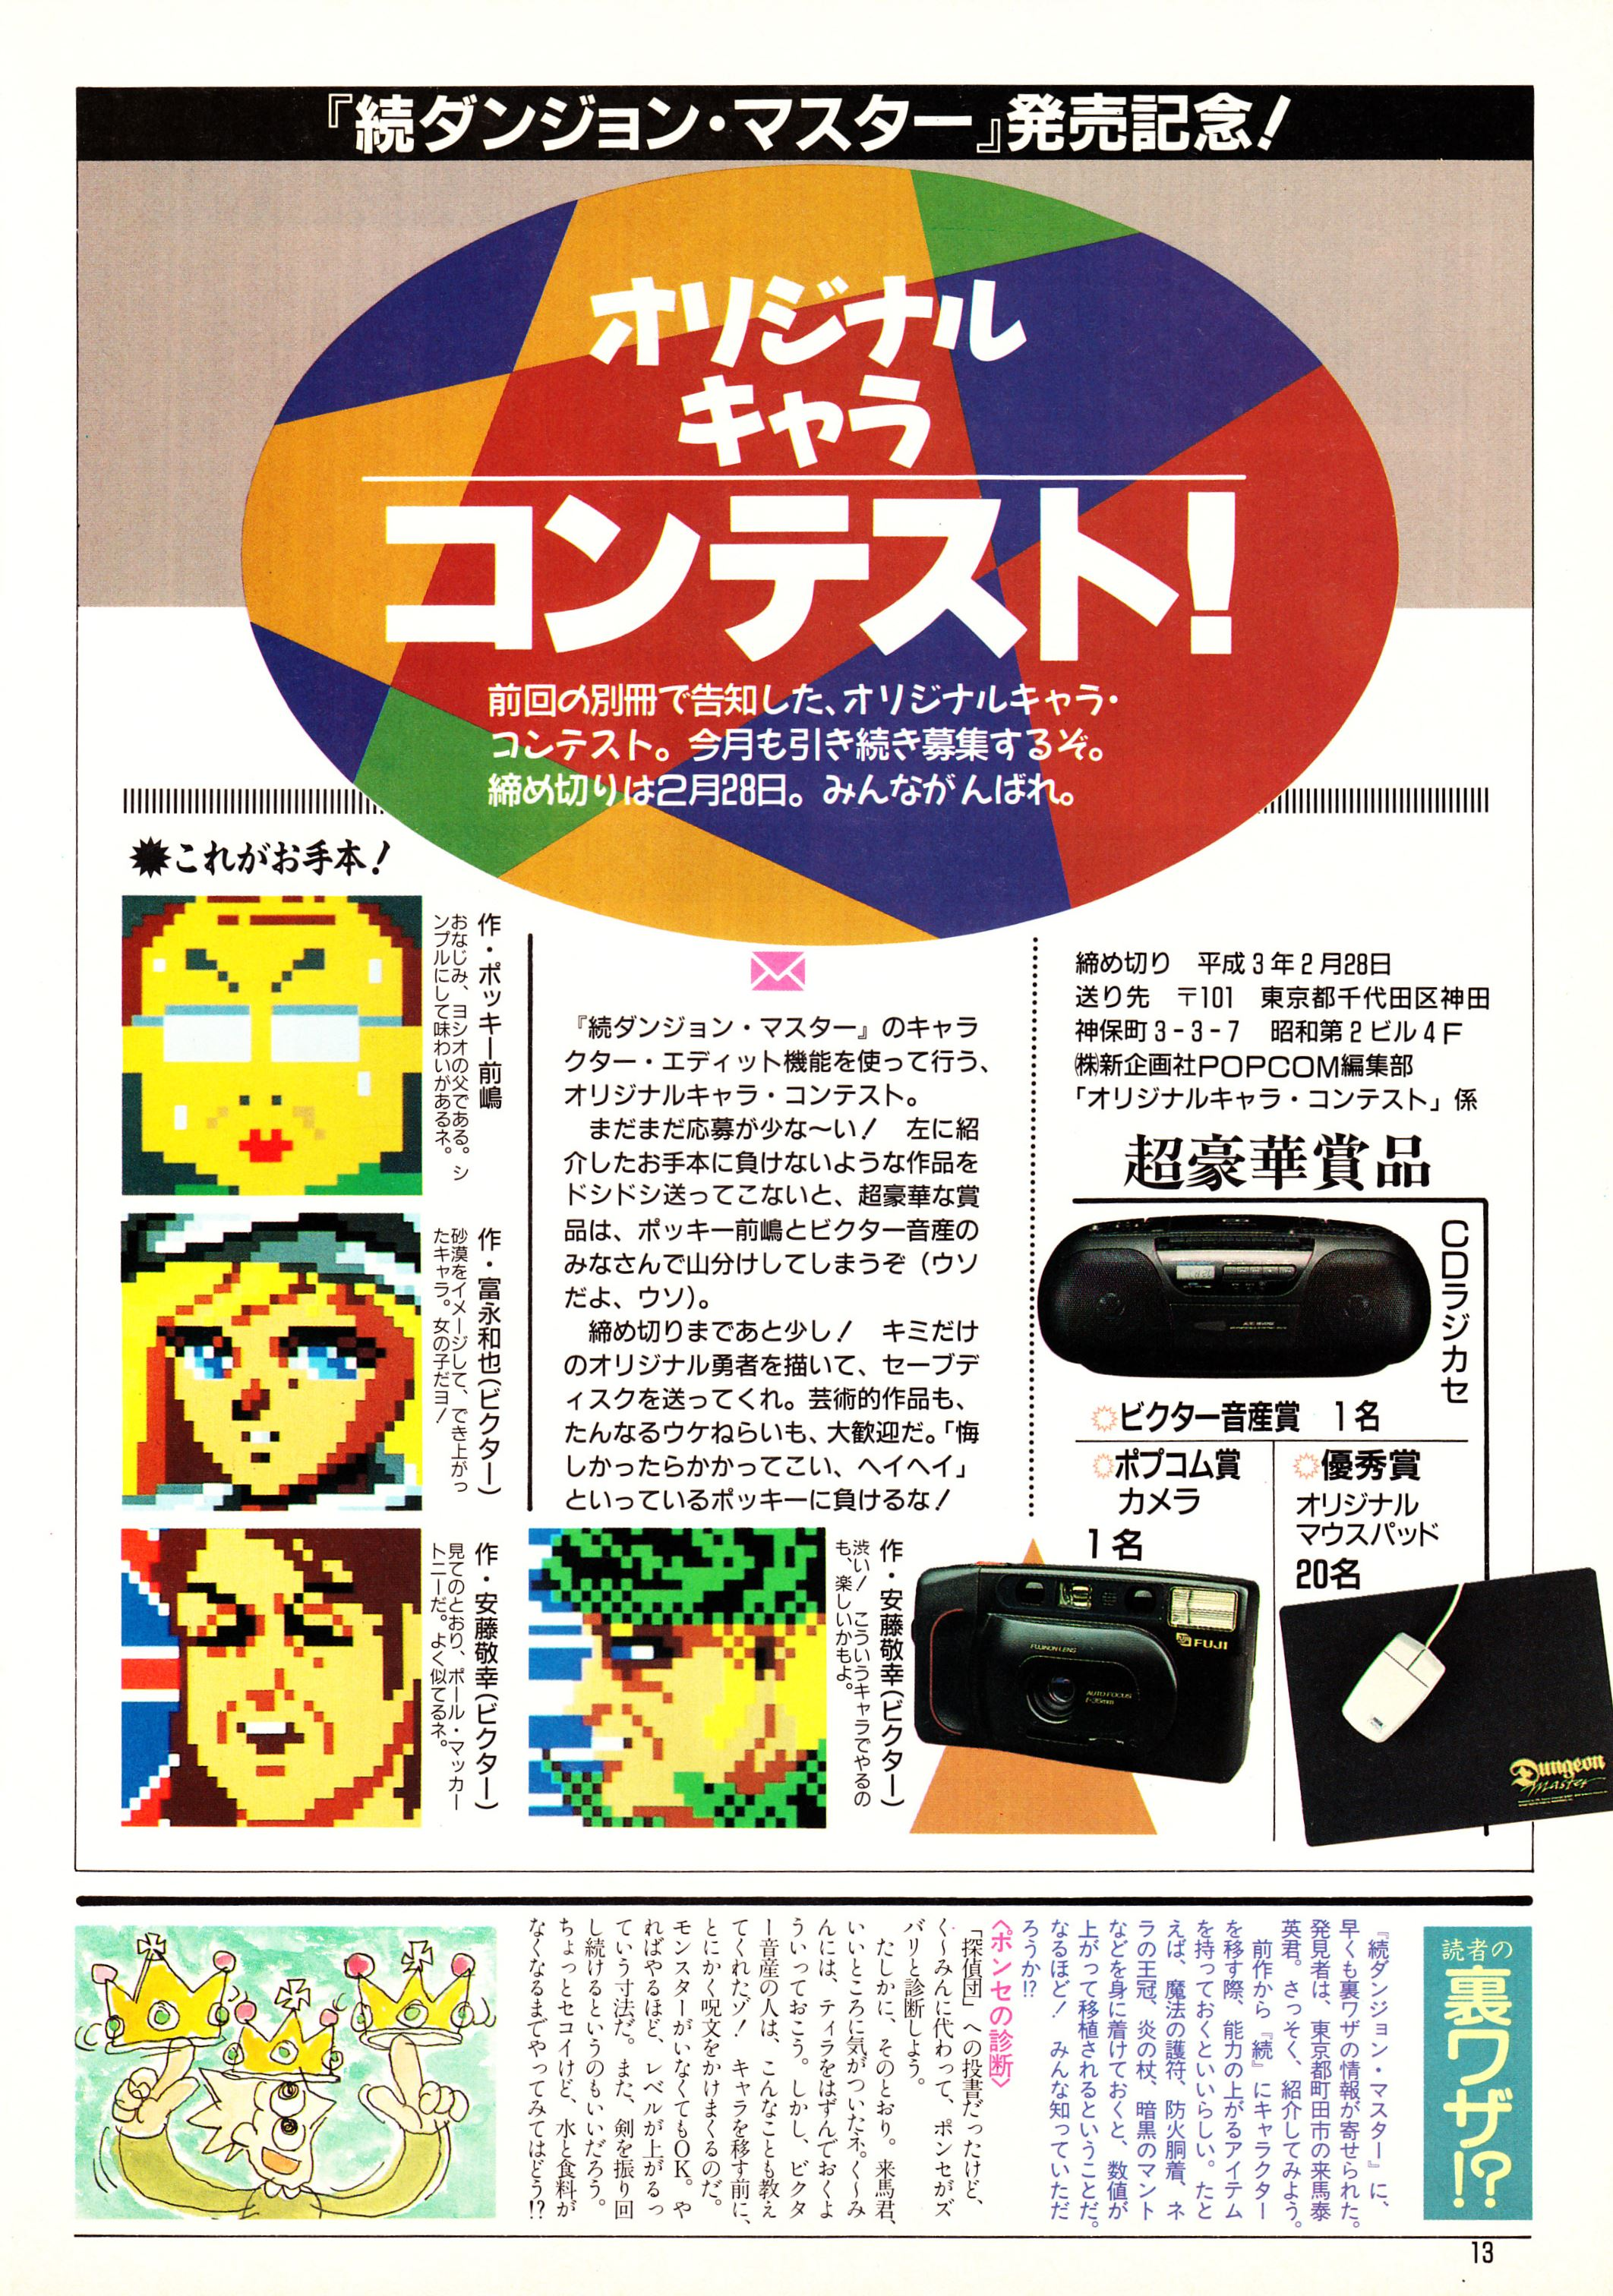 Supplement - Chaos Strikes Back Companion Guide II Guide published in Japanese magazine 'Popcom', Vol 9 No 3 01 March 1991, Page 15